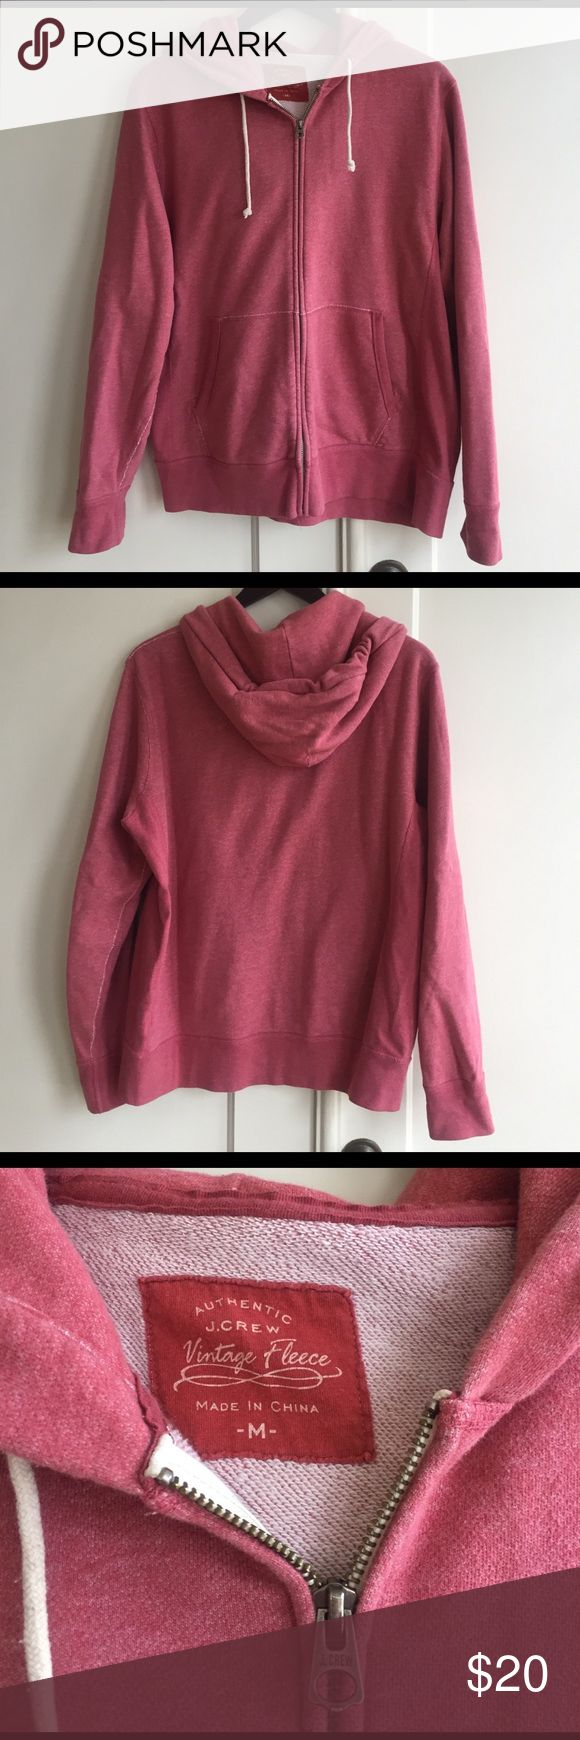 Jcrew faded red men's zip up hoodie M Faded red soft zip up hoodie!  Men's medium but a few ladies have gone for this hoodie when visiting SF and not packing the right layers!! 🤗 J. Crew Tops Sweatshirts & Hoodies